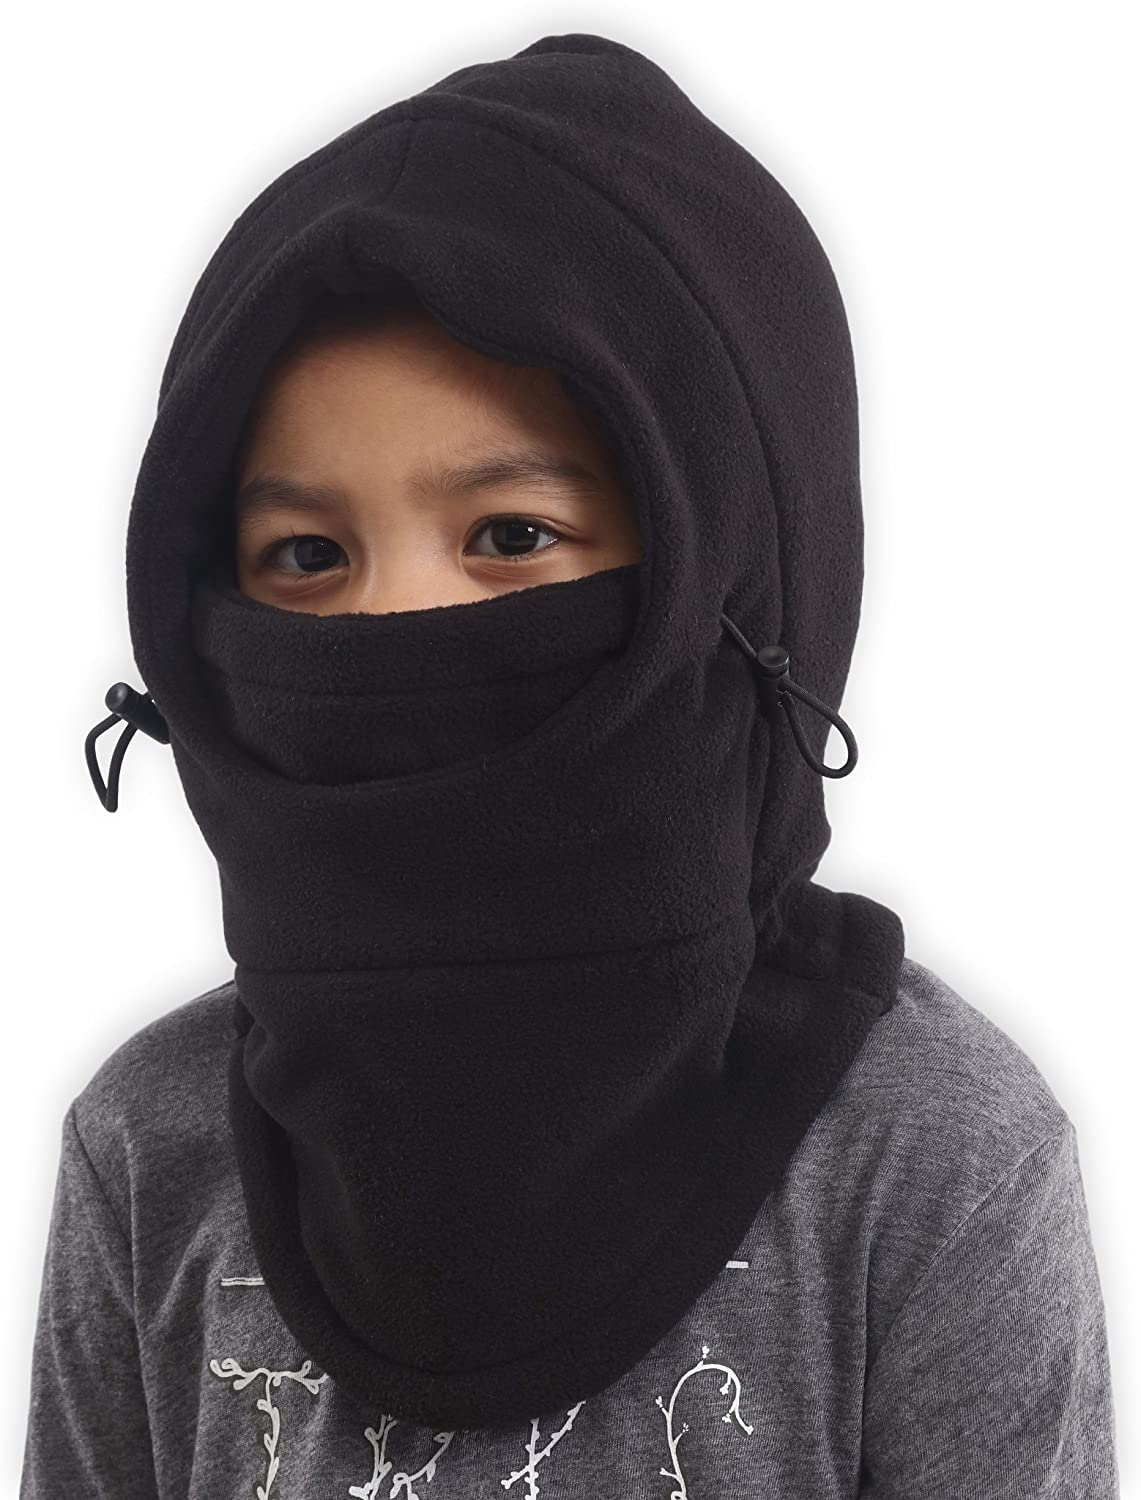 Kids Ski Mask - Winter Face Mask with Hood - Cold Weather Balaclava Snow Mask & Neck Warmer for Boys & Girls